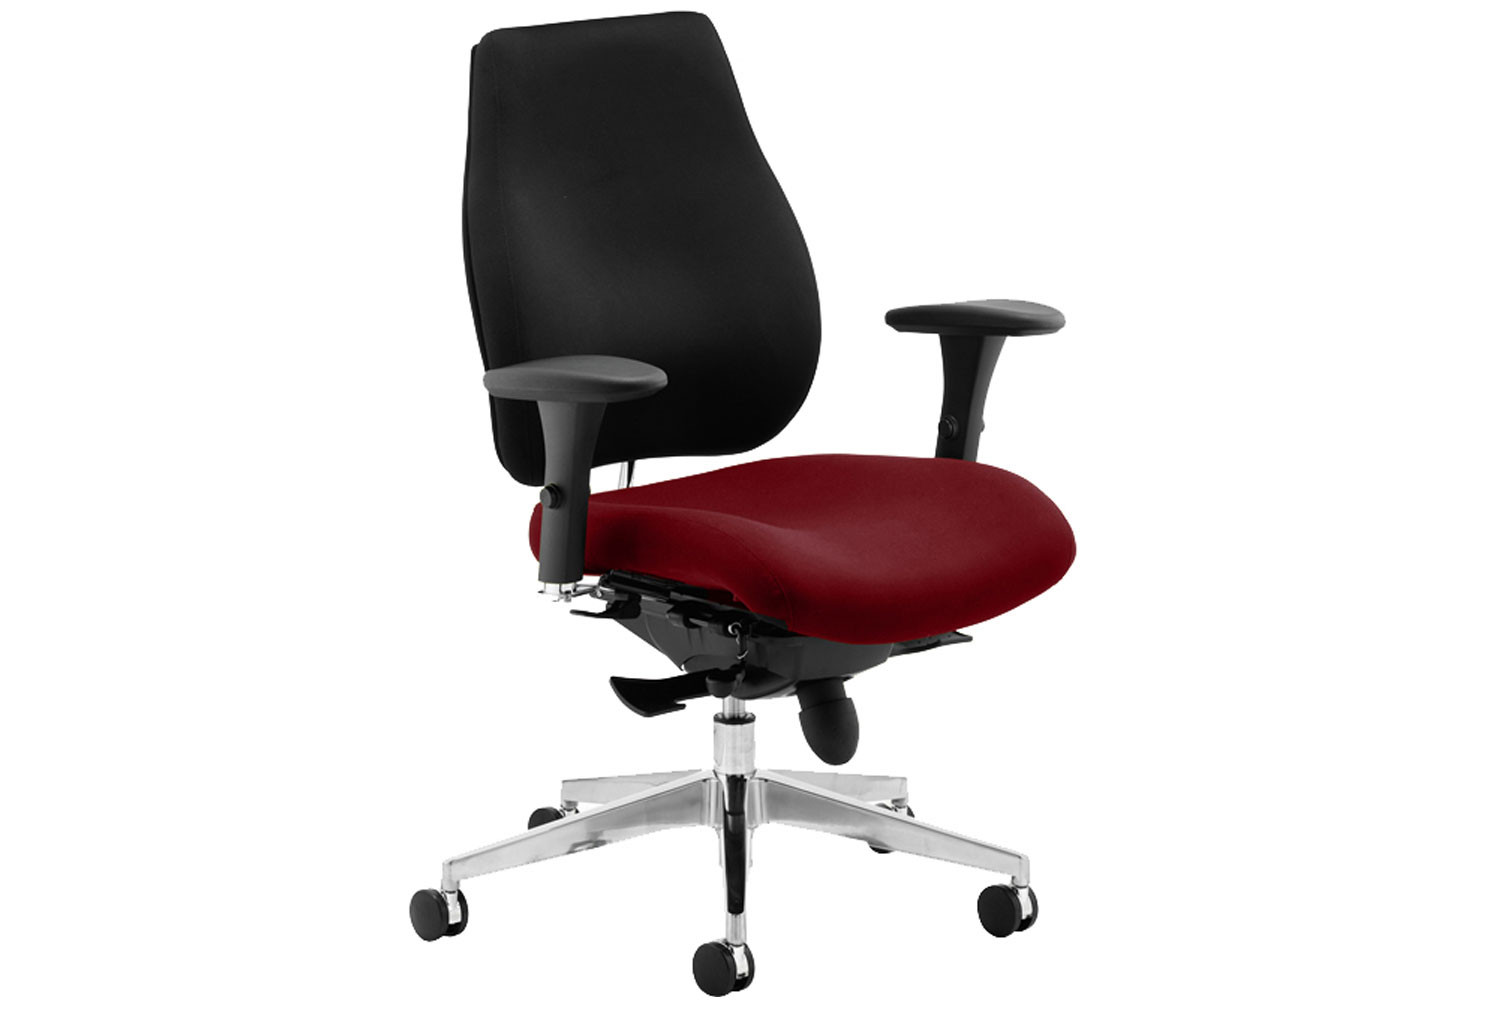 Praktikos Plus Posture Operator Chair Black Back